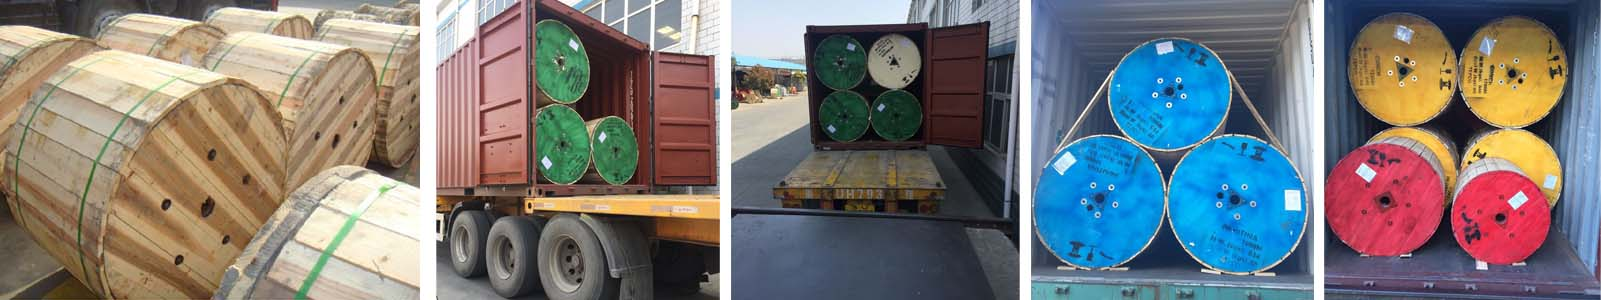 aluminum quadruplex cable delivery